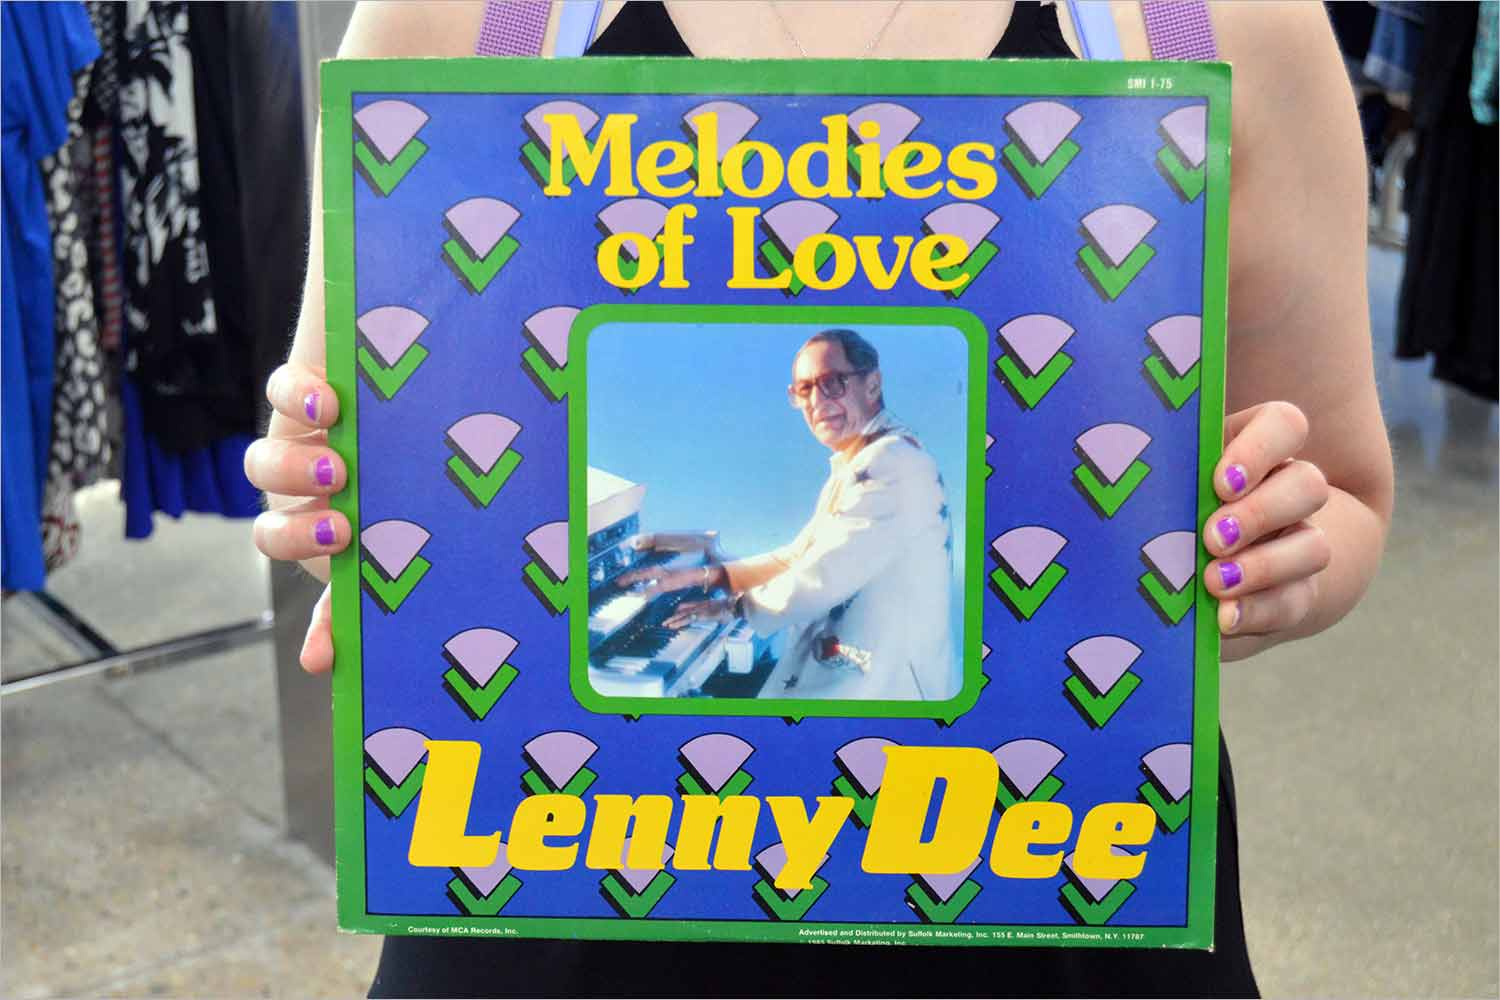 'Melodies of Love'